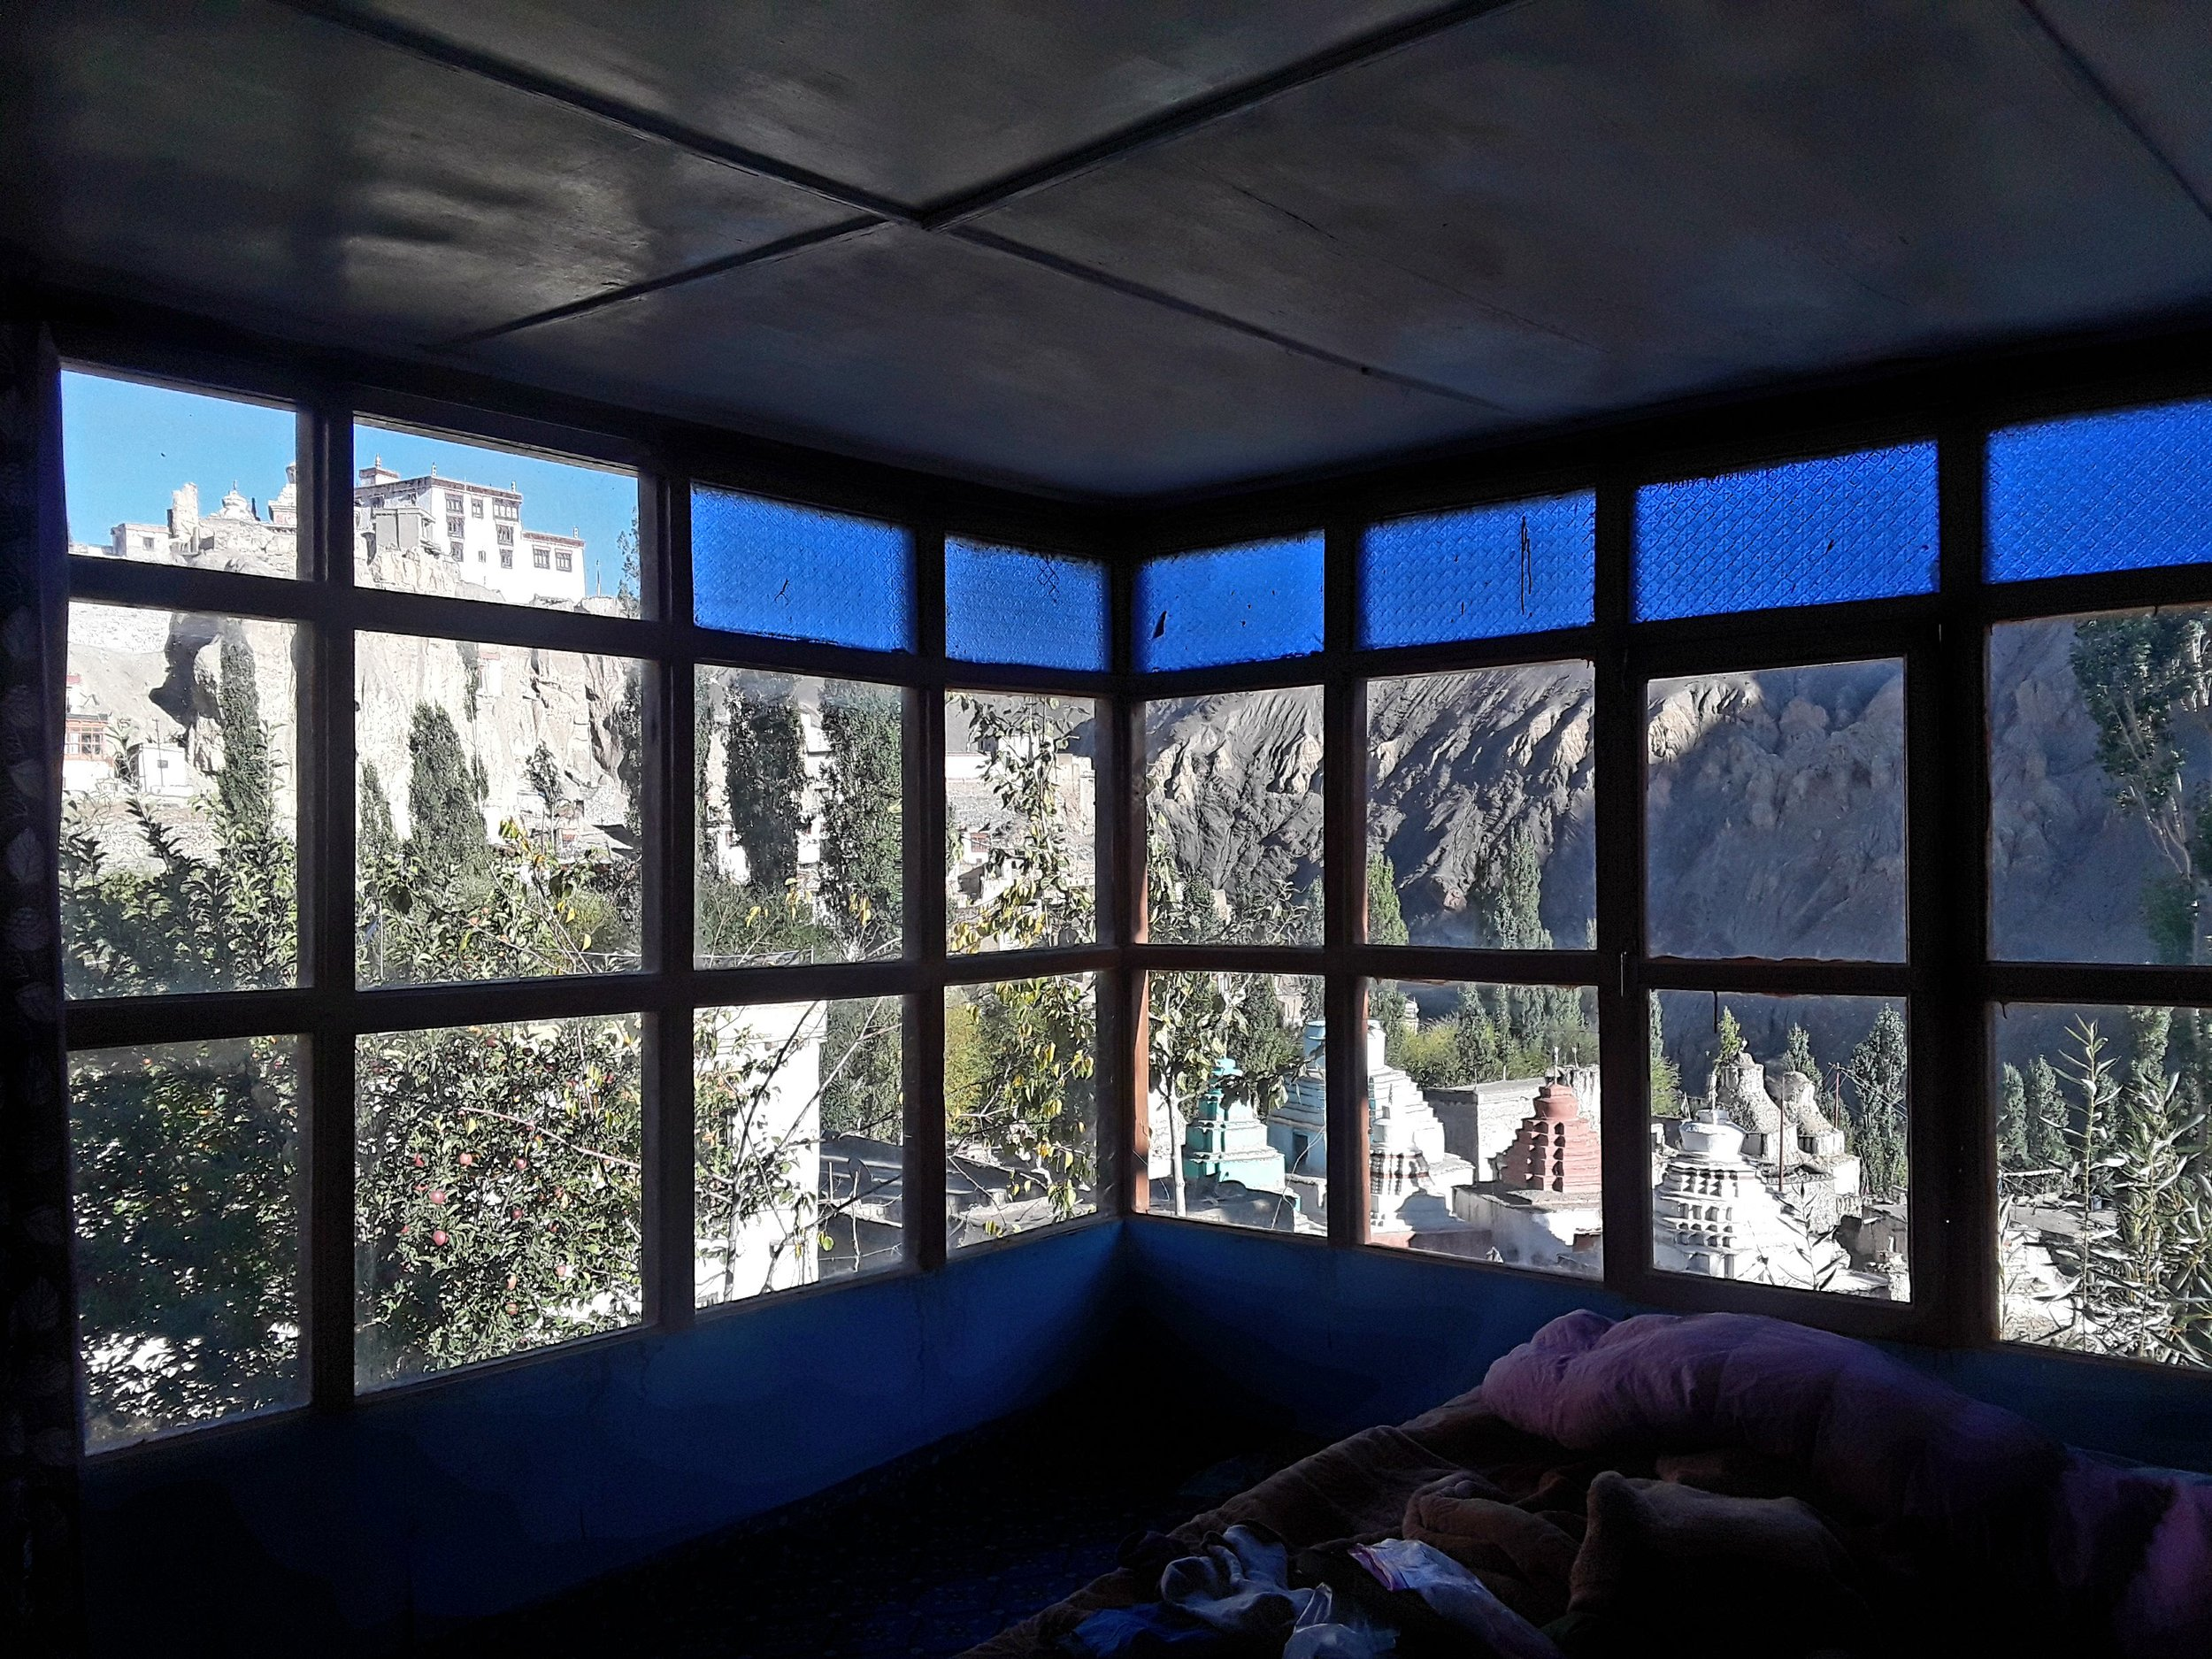 My private room had views on two sides of my wall overlooking the monastery and the town.